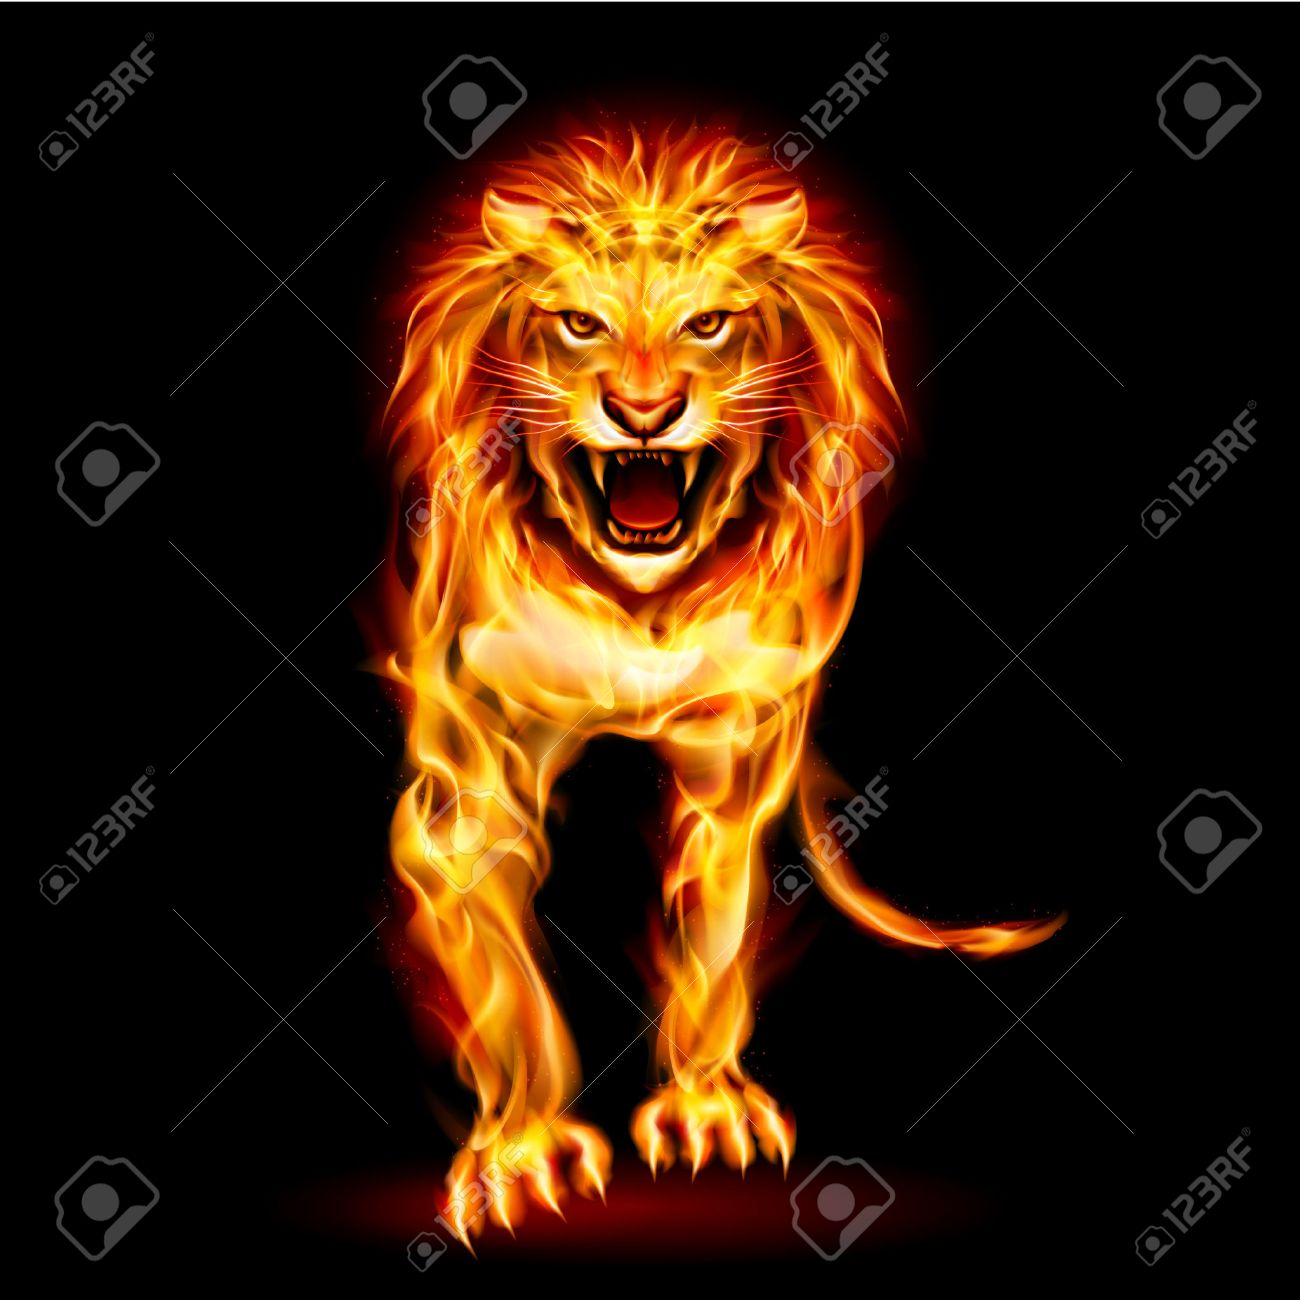 Illustration Of Fire Lion Isolated On Black Background Royalty Free Cliparts Vectors And Stock Illustration Image 27843323